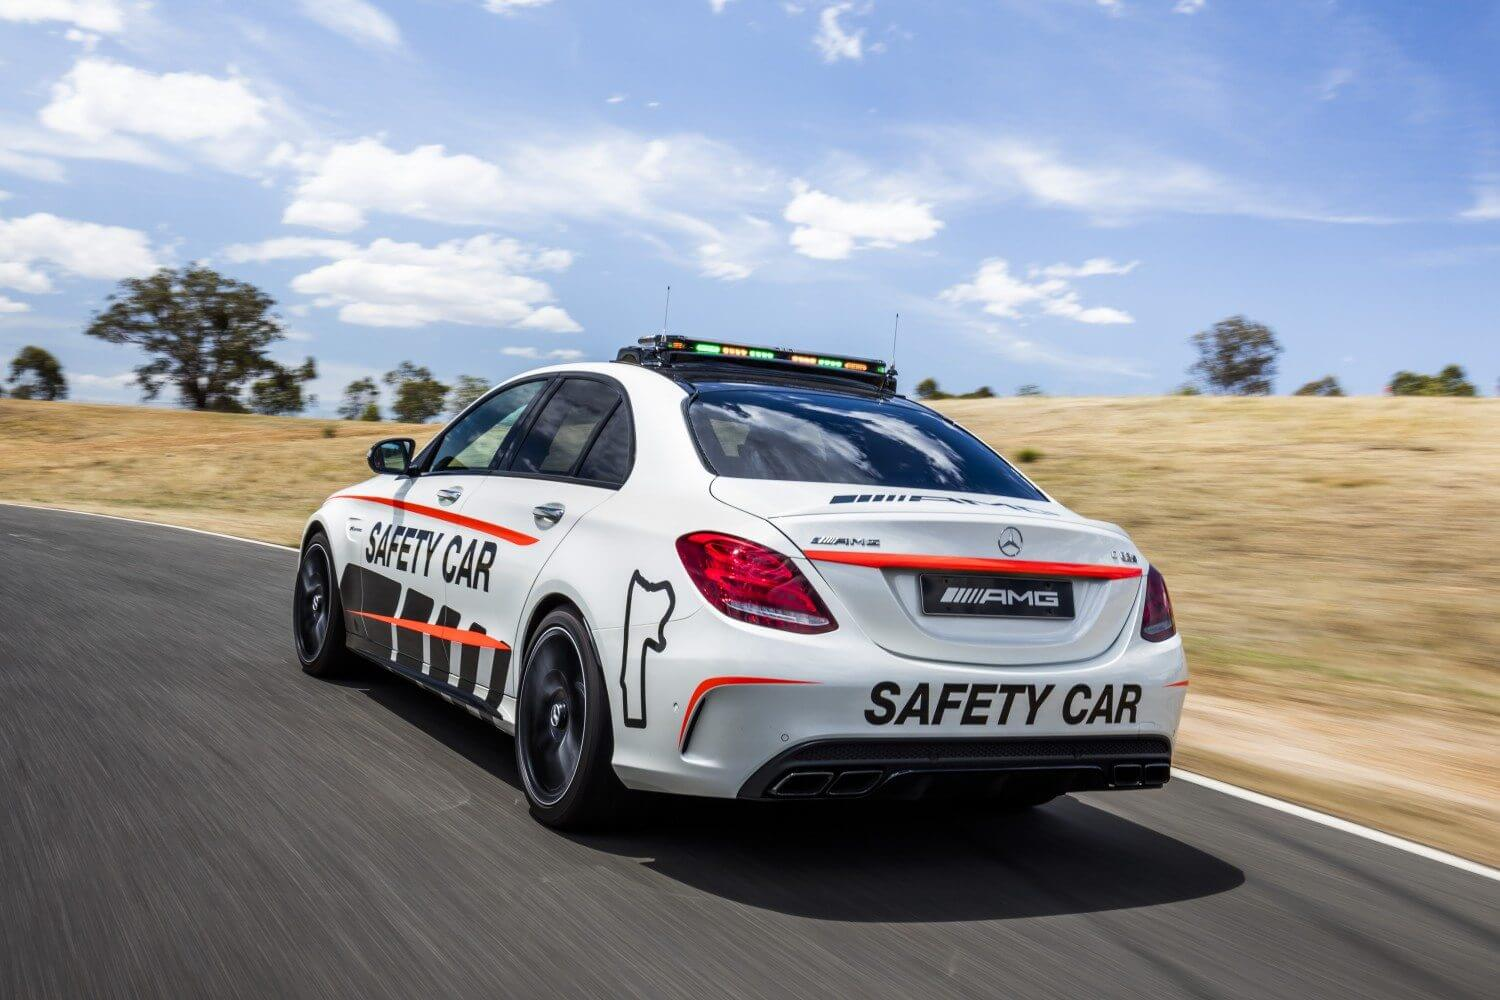 2016-Liqui-Moly-Bathurst-Mercedes-AMG-C63-S-Safety-Car-09